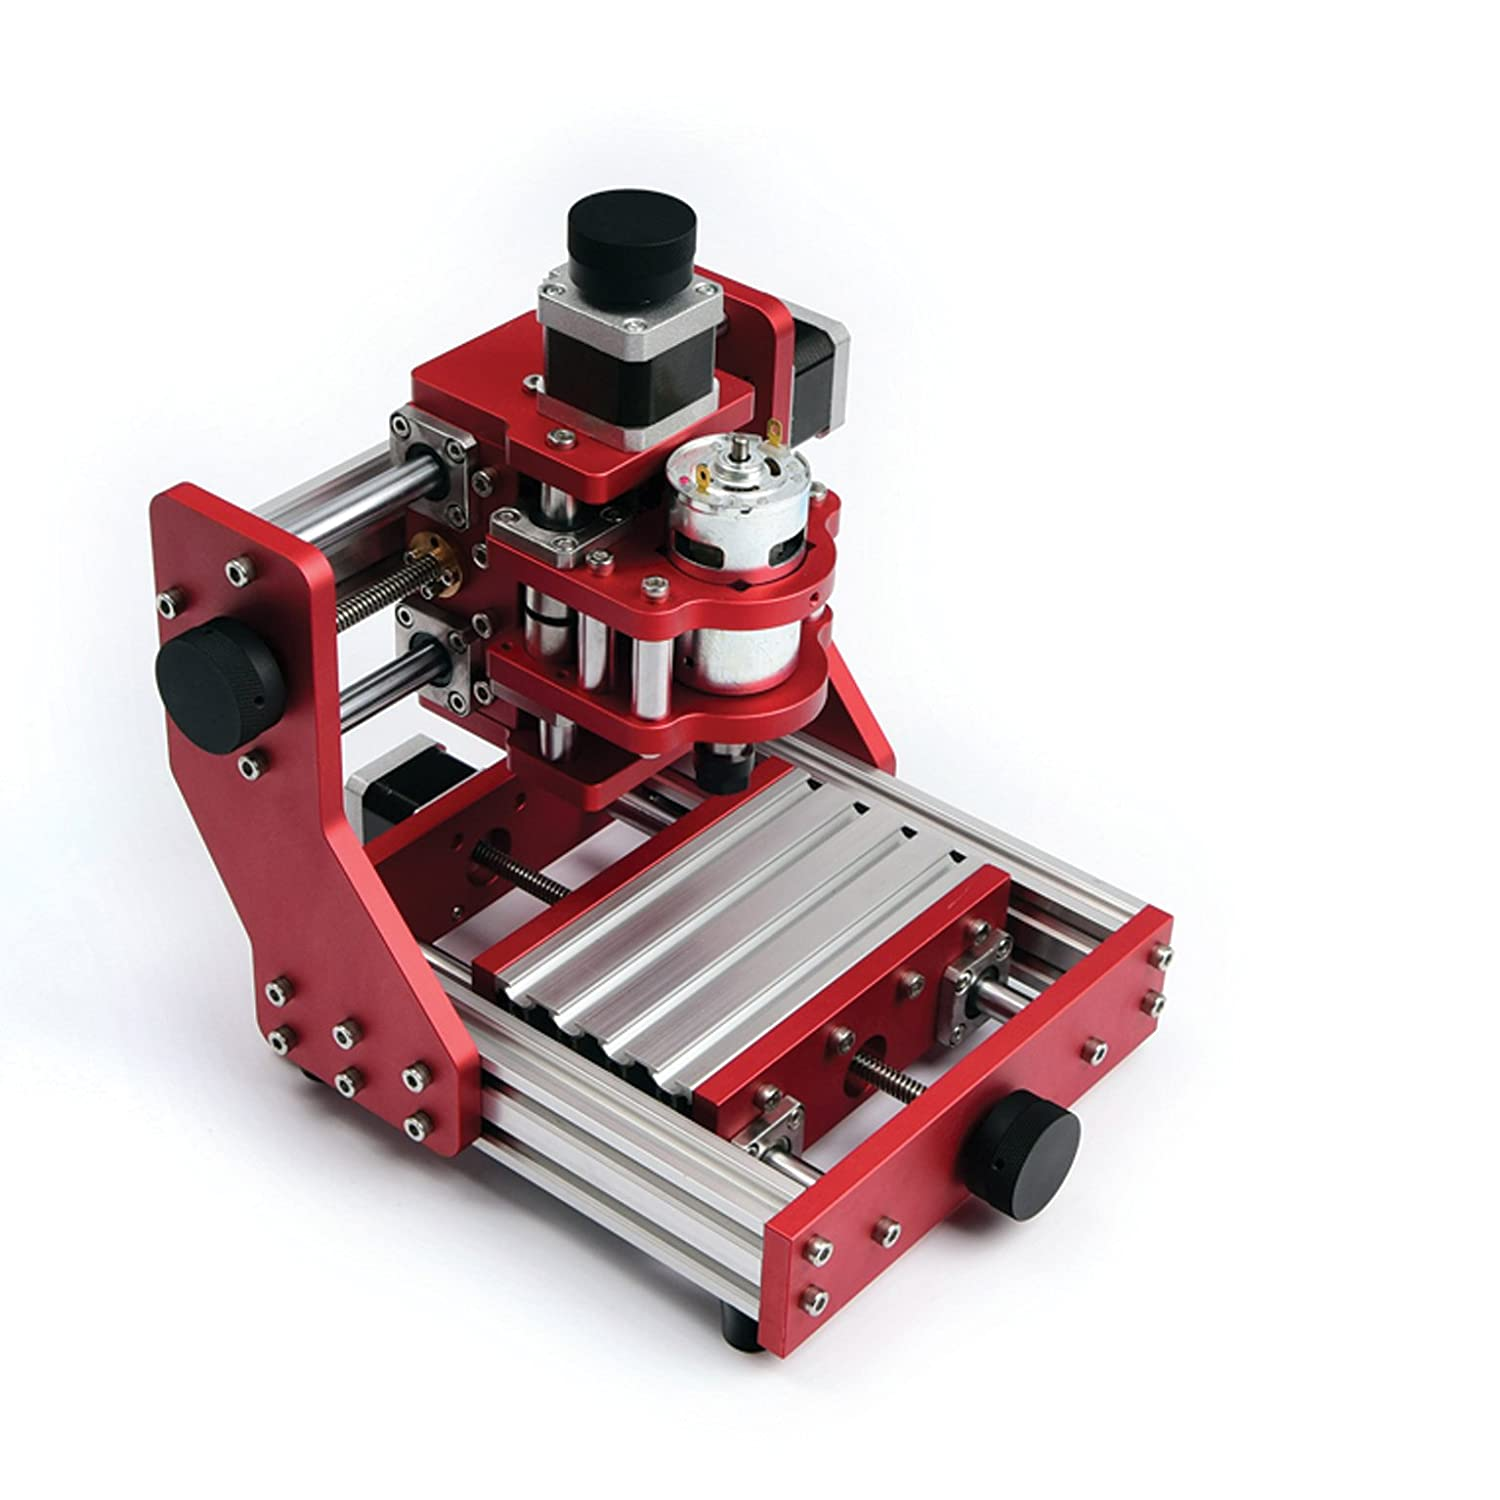 Benbox Diy Mini 1310 Metal Homemade Vertical Milling Machine